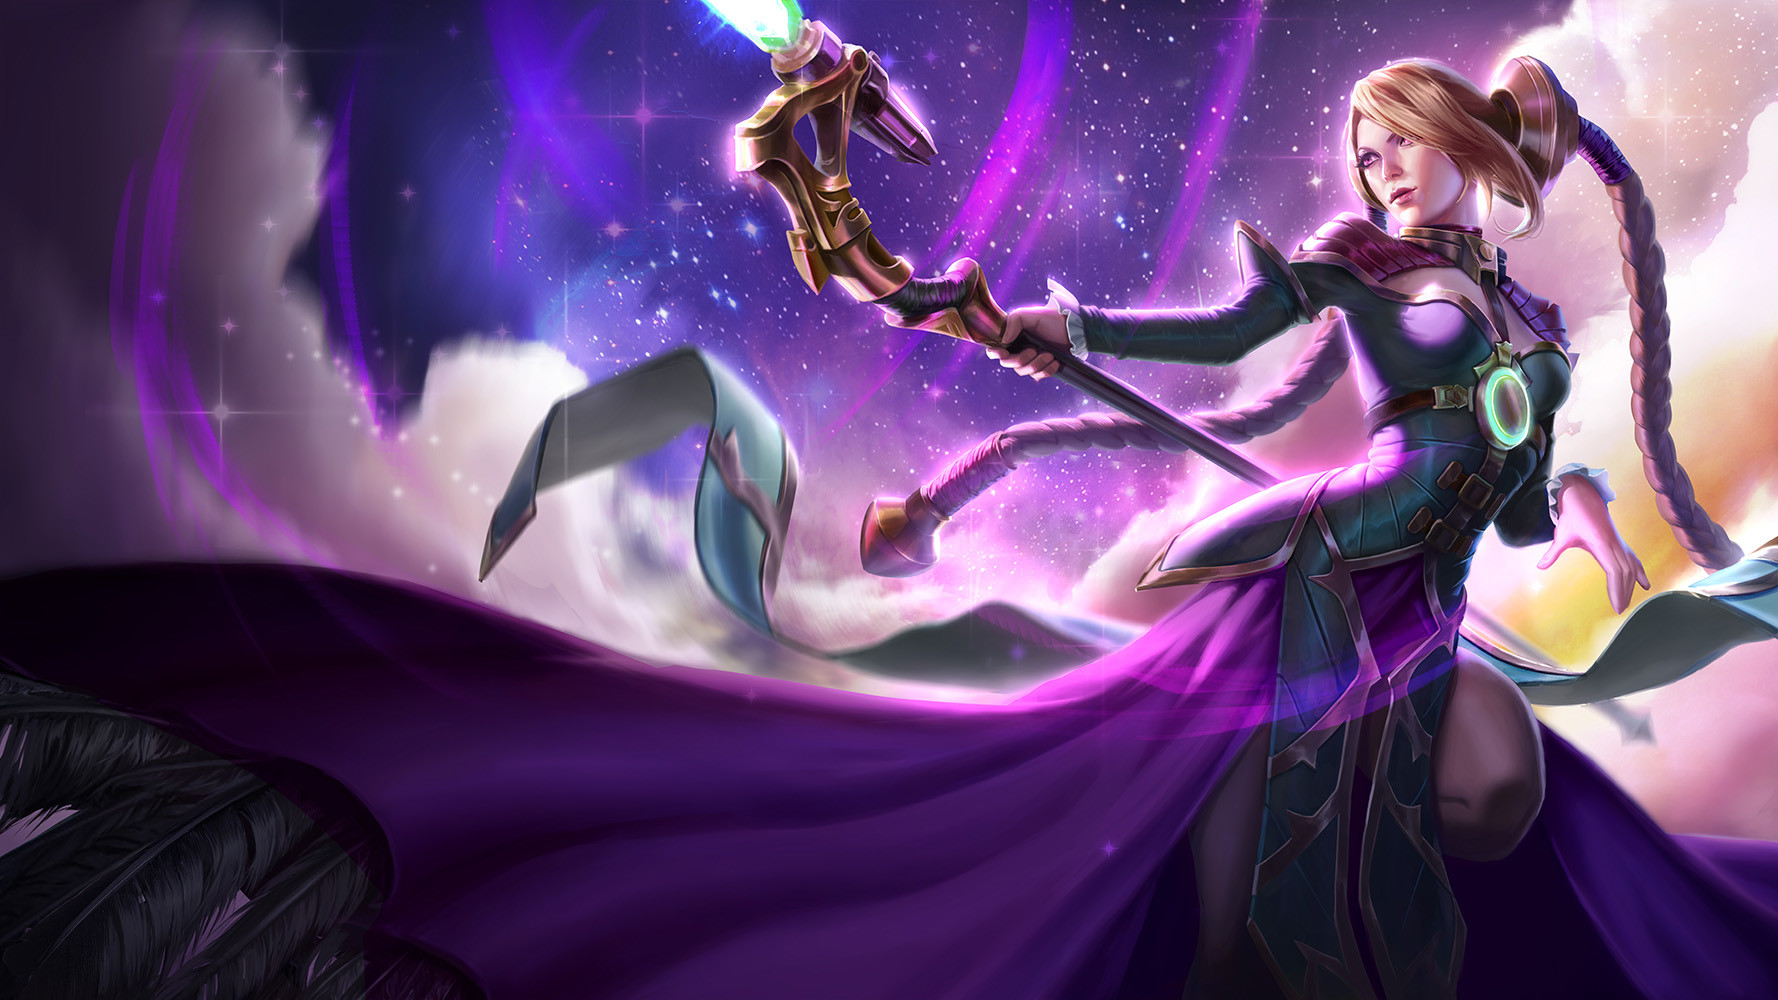 juegos parecidos a league of legends